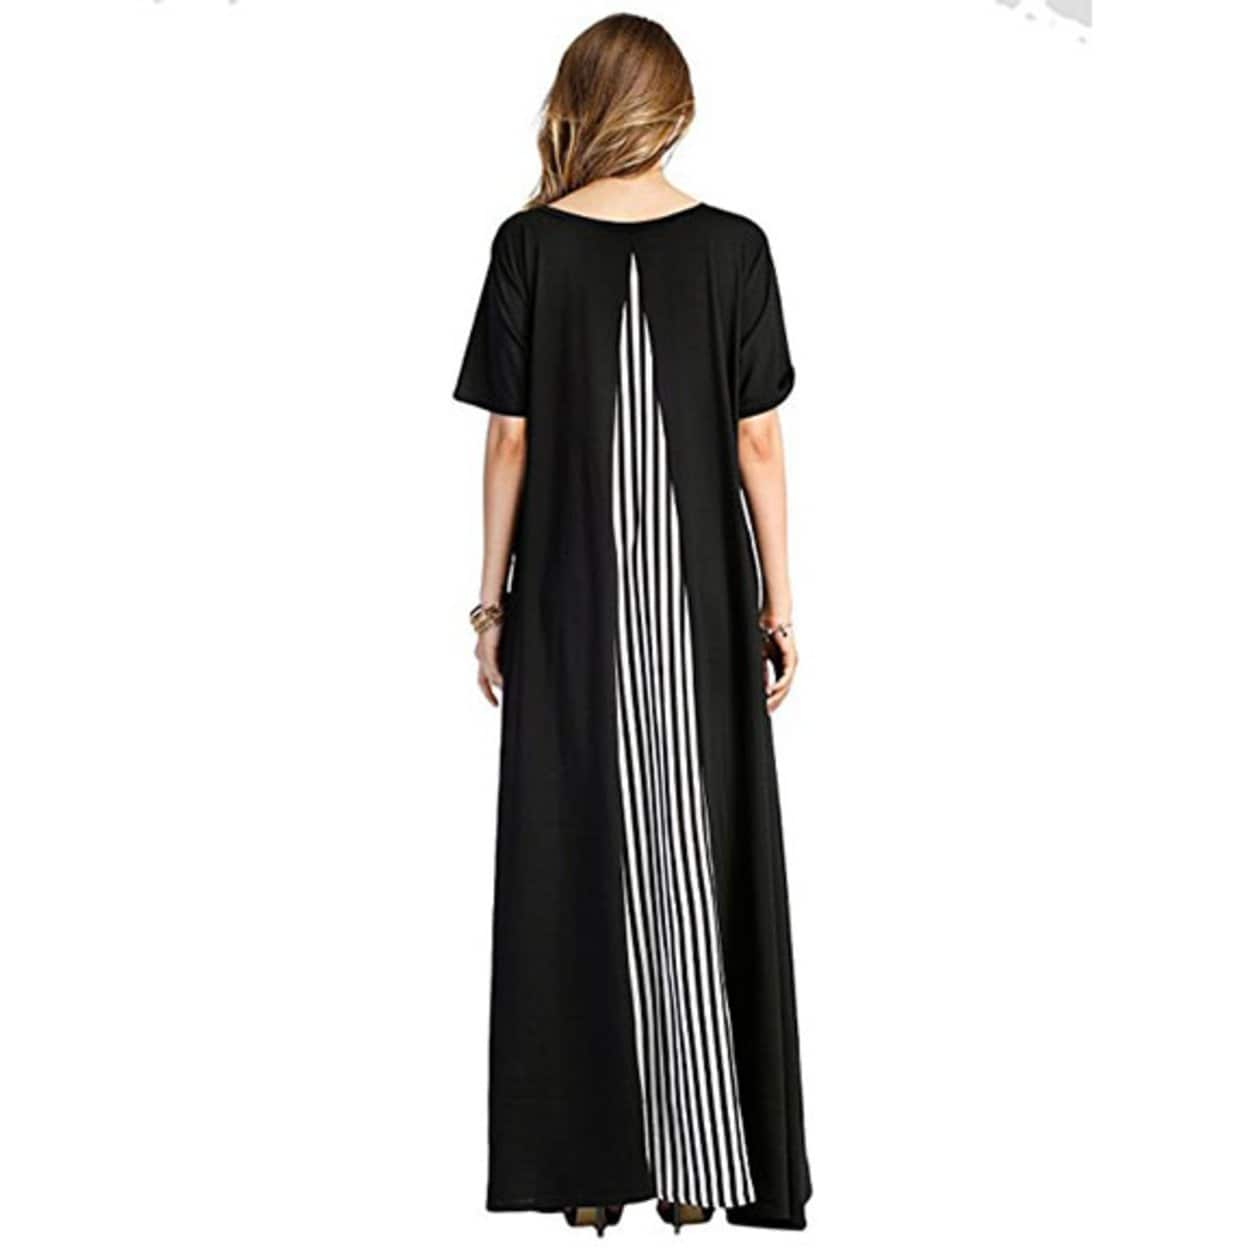 Gorgeous Maxi Dress with Short Sleeve Oversize Jersey Long Cloth One Size FT2081